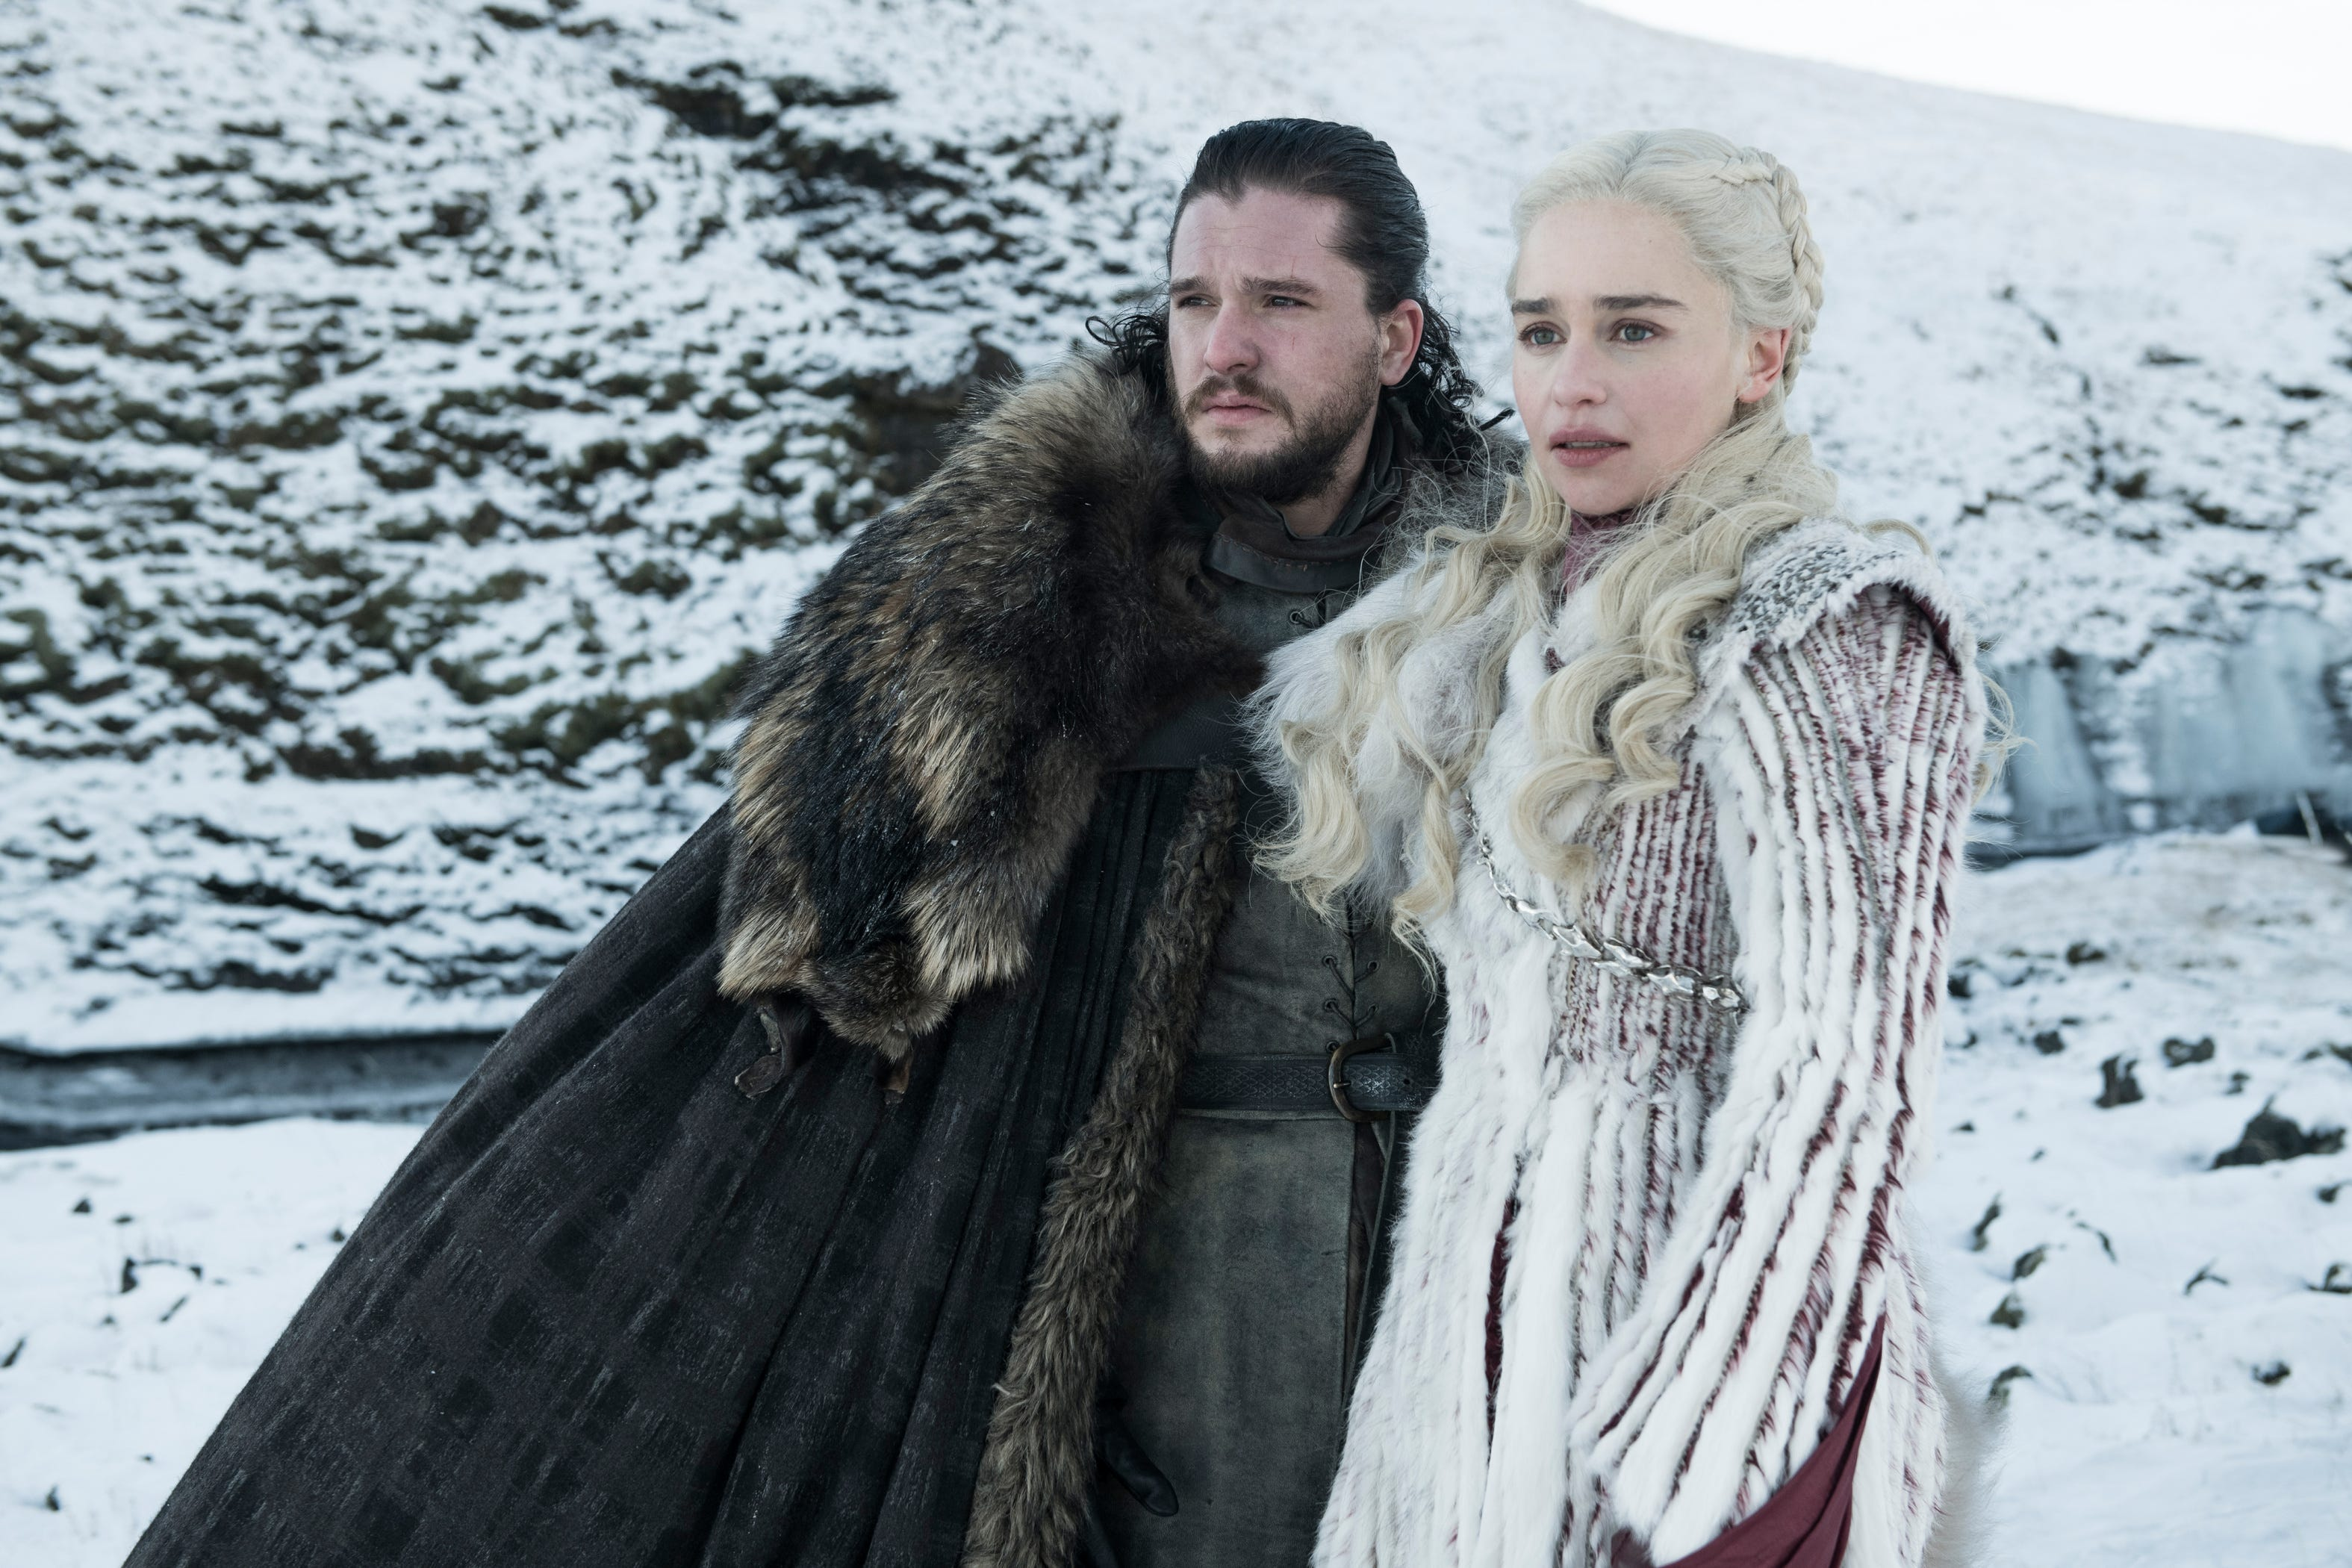 Jon & Dany's Situation Has Definitely Changed On Game Of Thrones